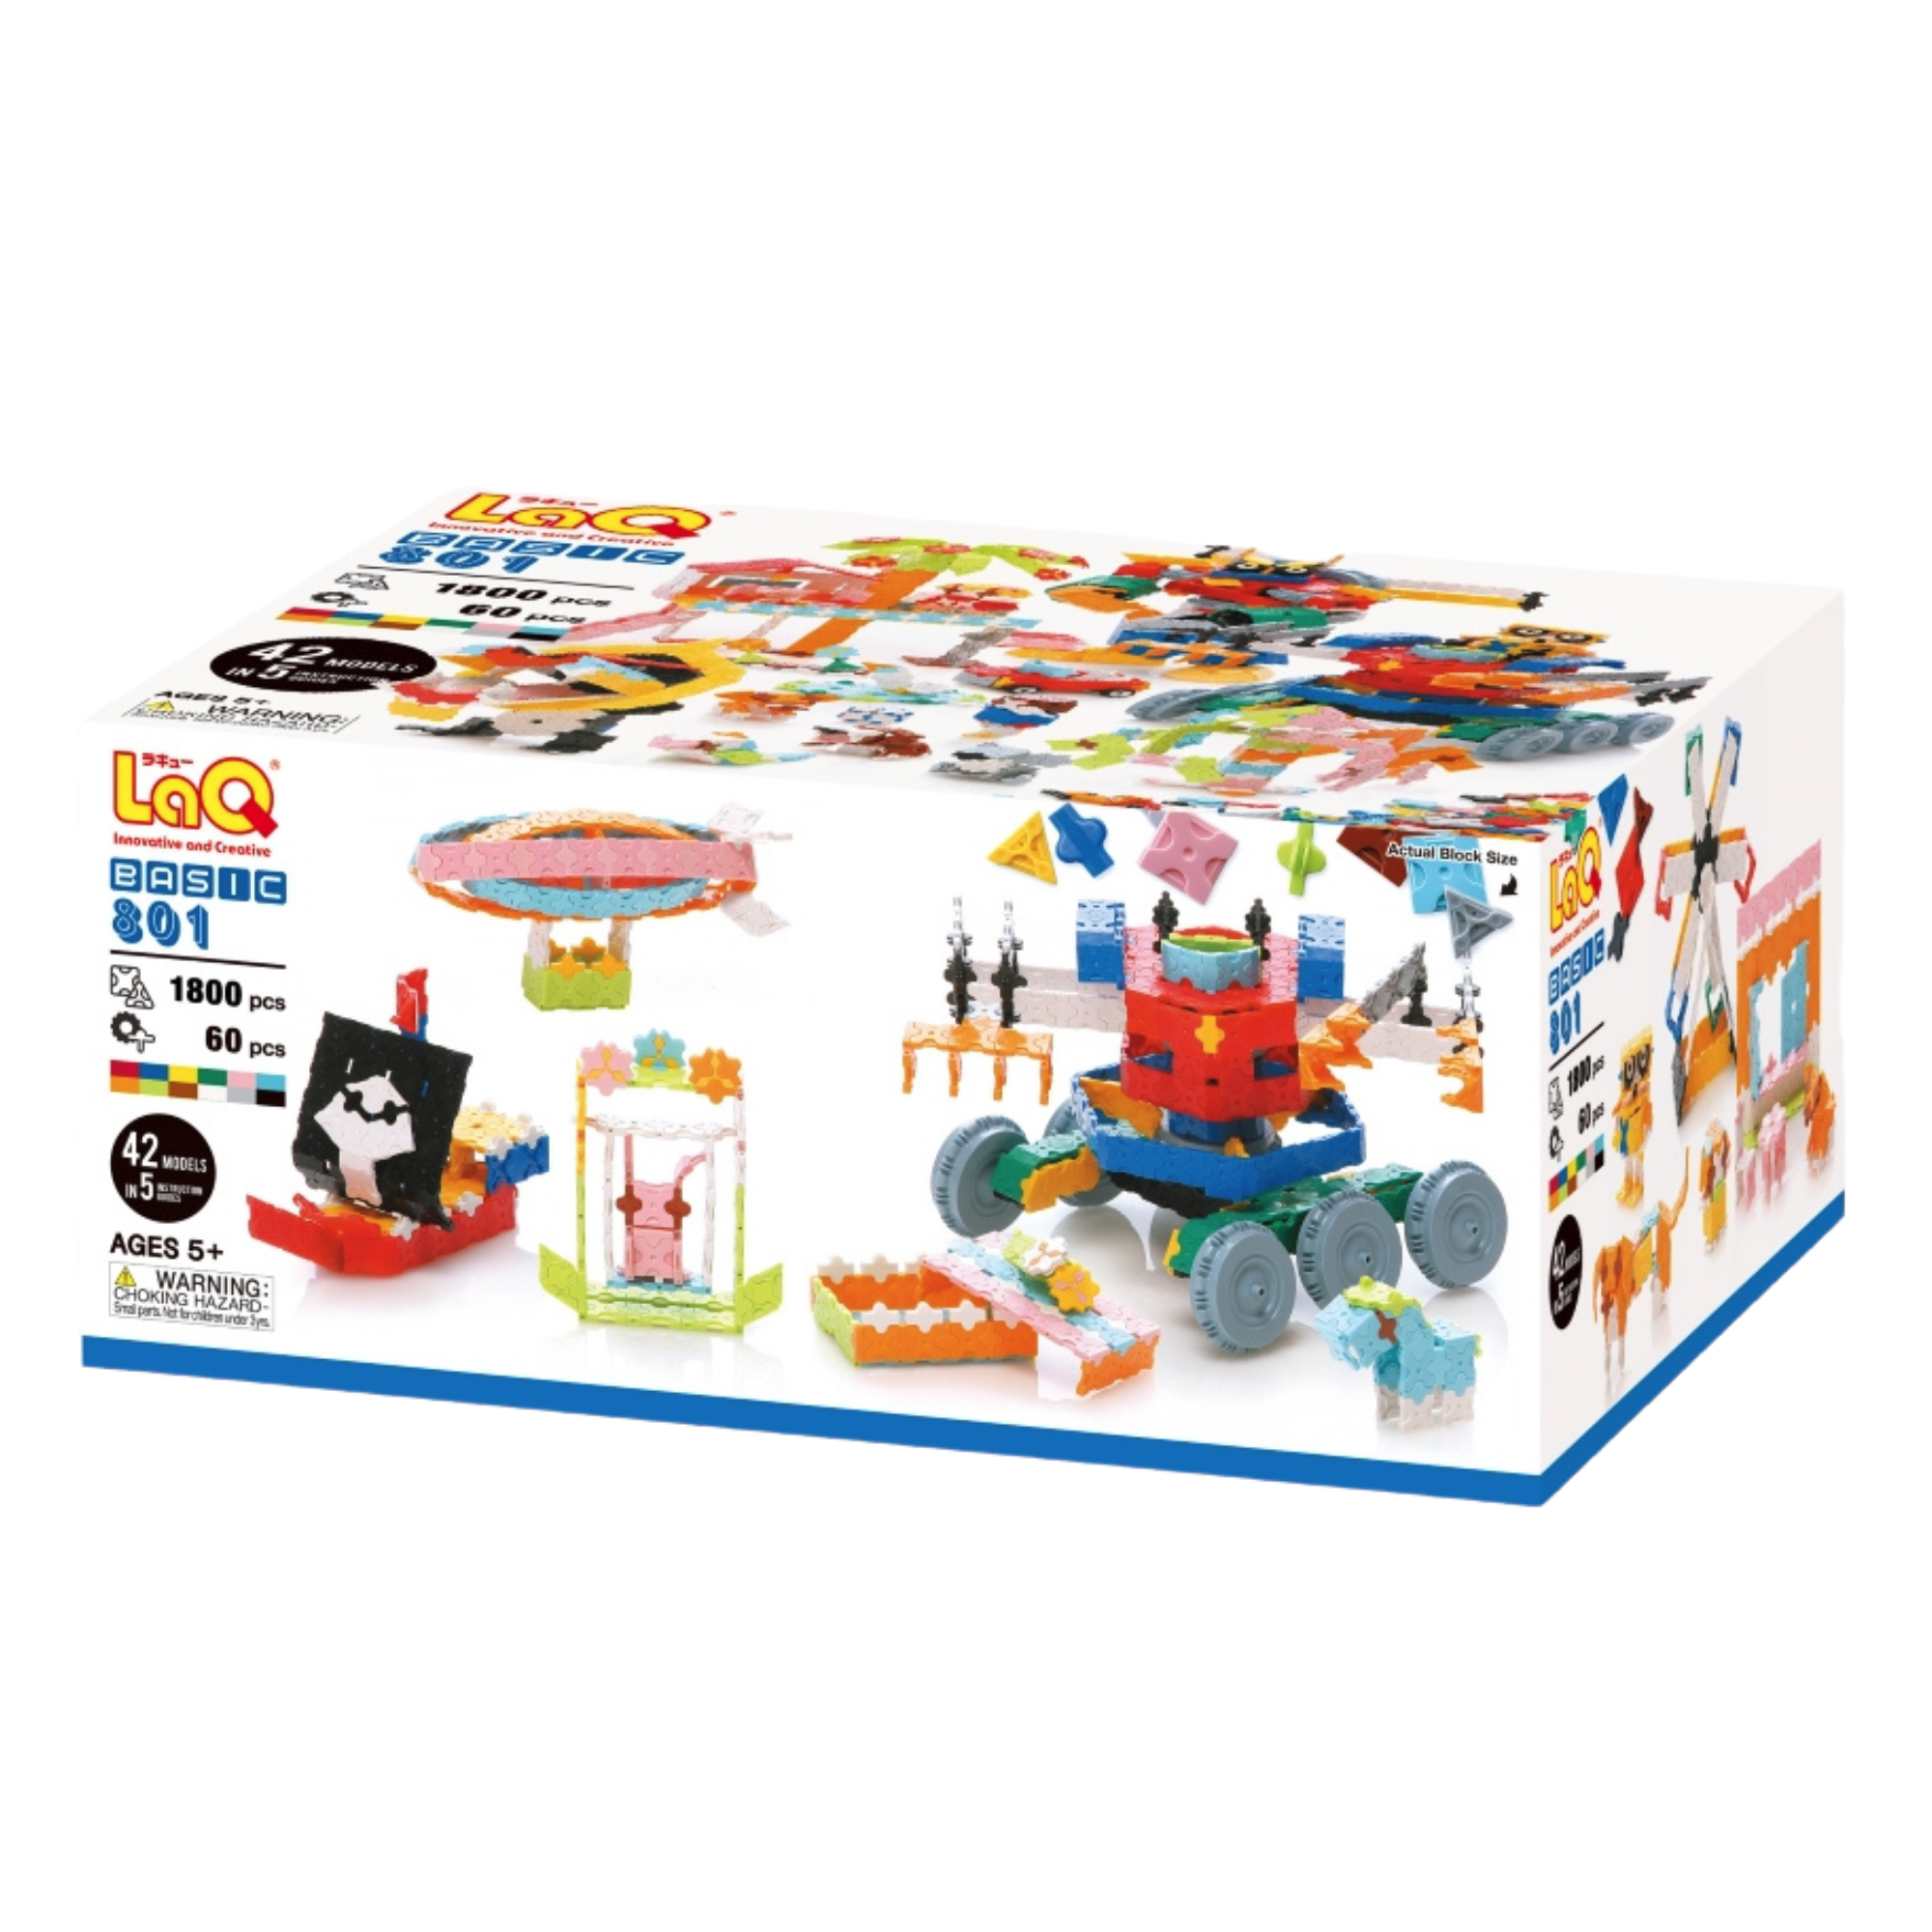 LaQ Basic 801 - STEM Construction Toy